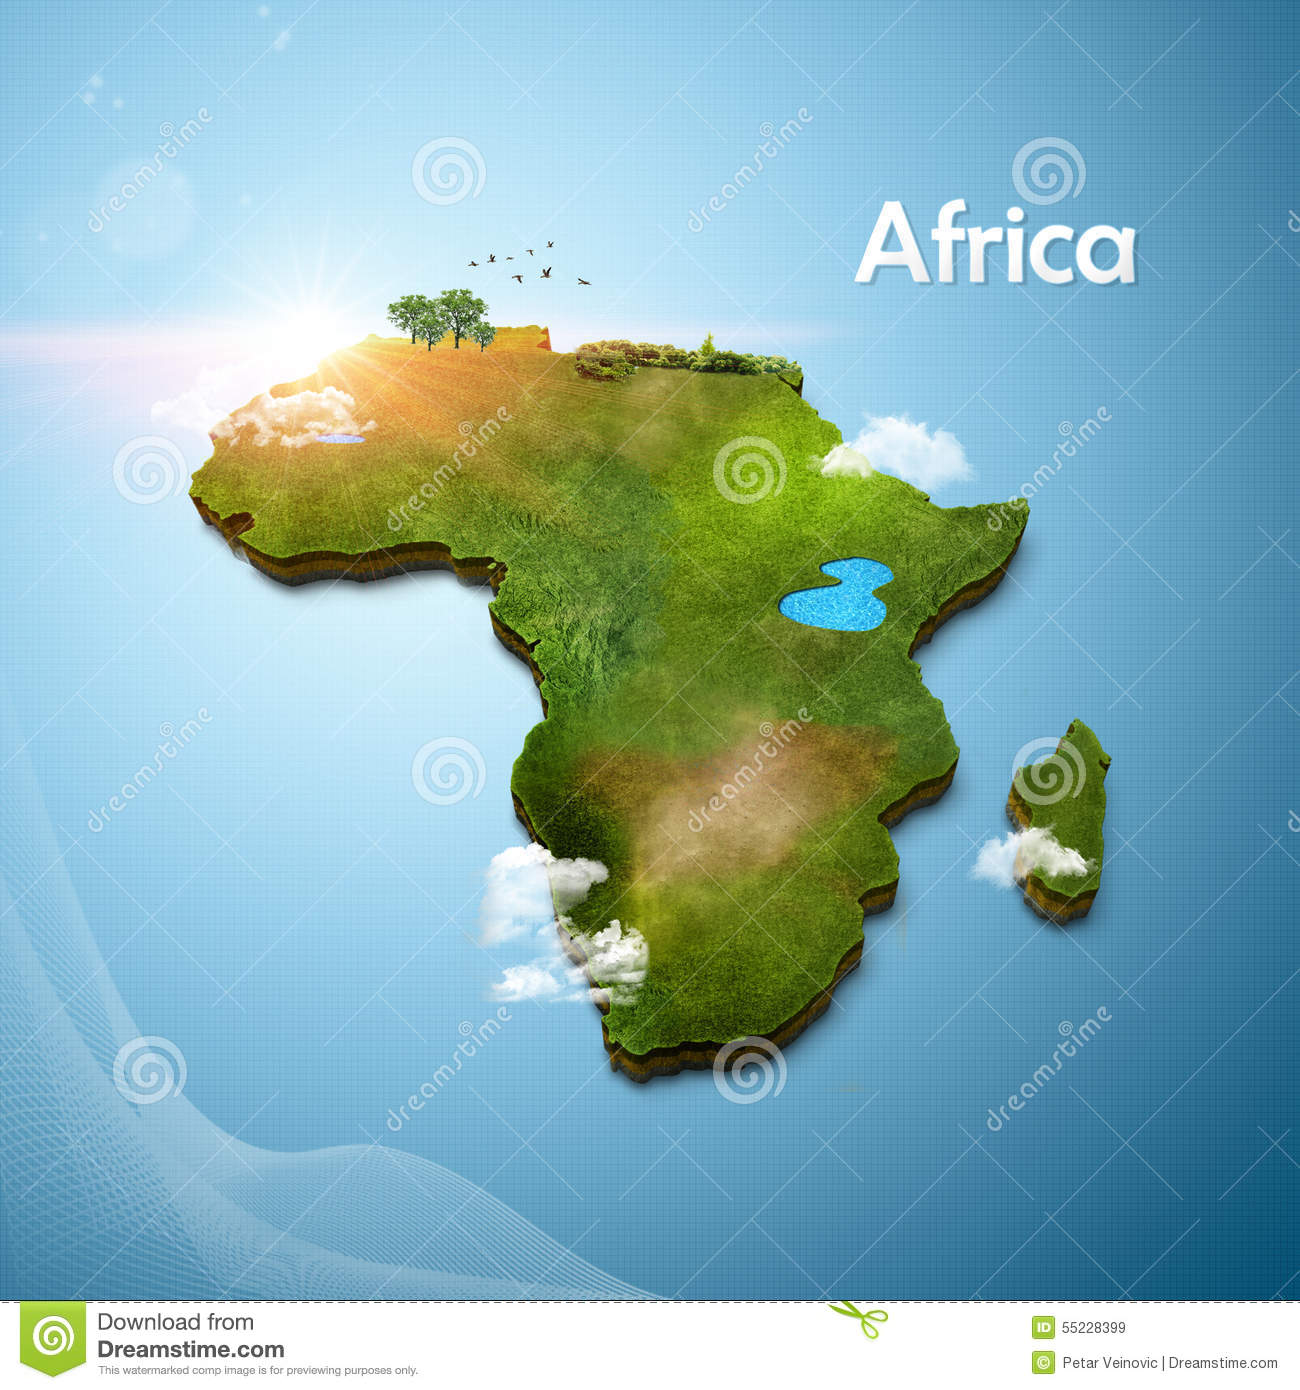 Map Of Africa 3d.Realistic 3d Map Of Africa Stock Illustration Illustration Of Green